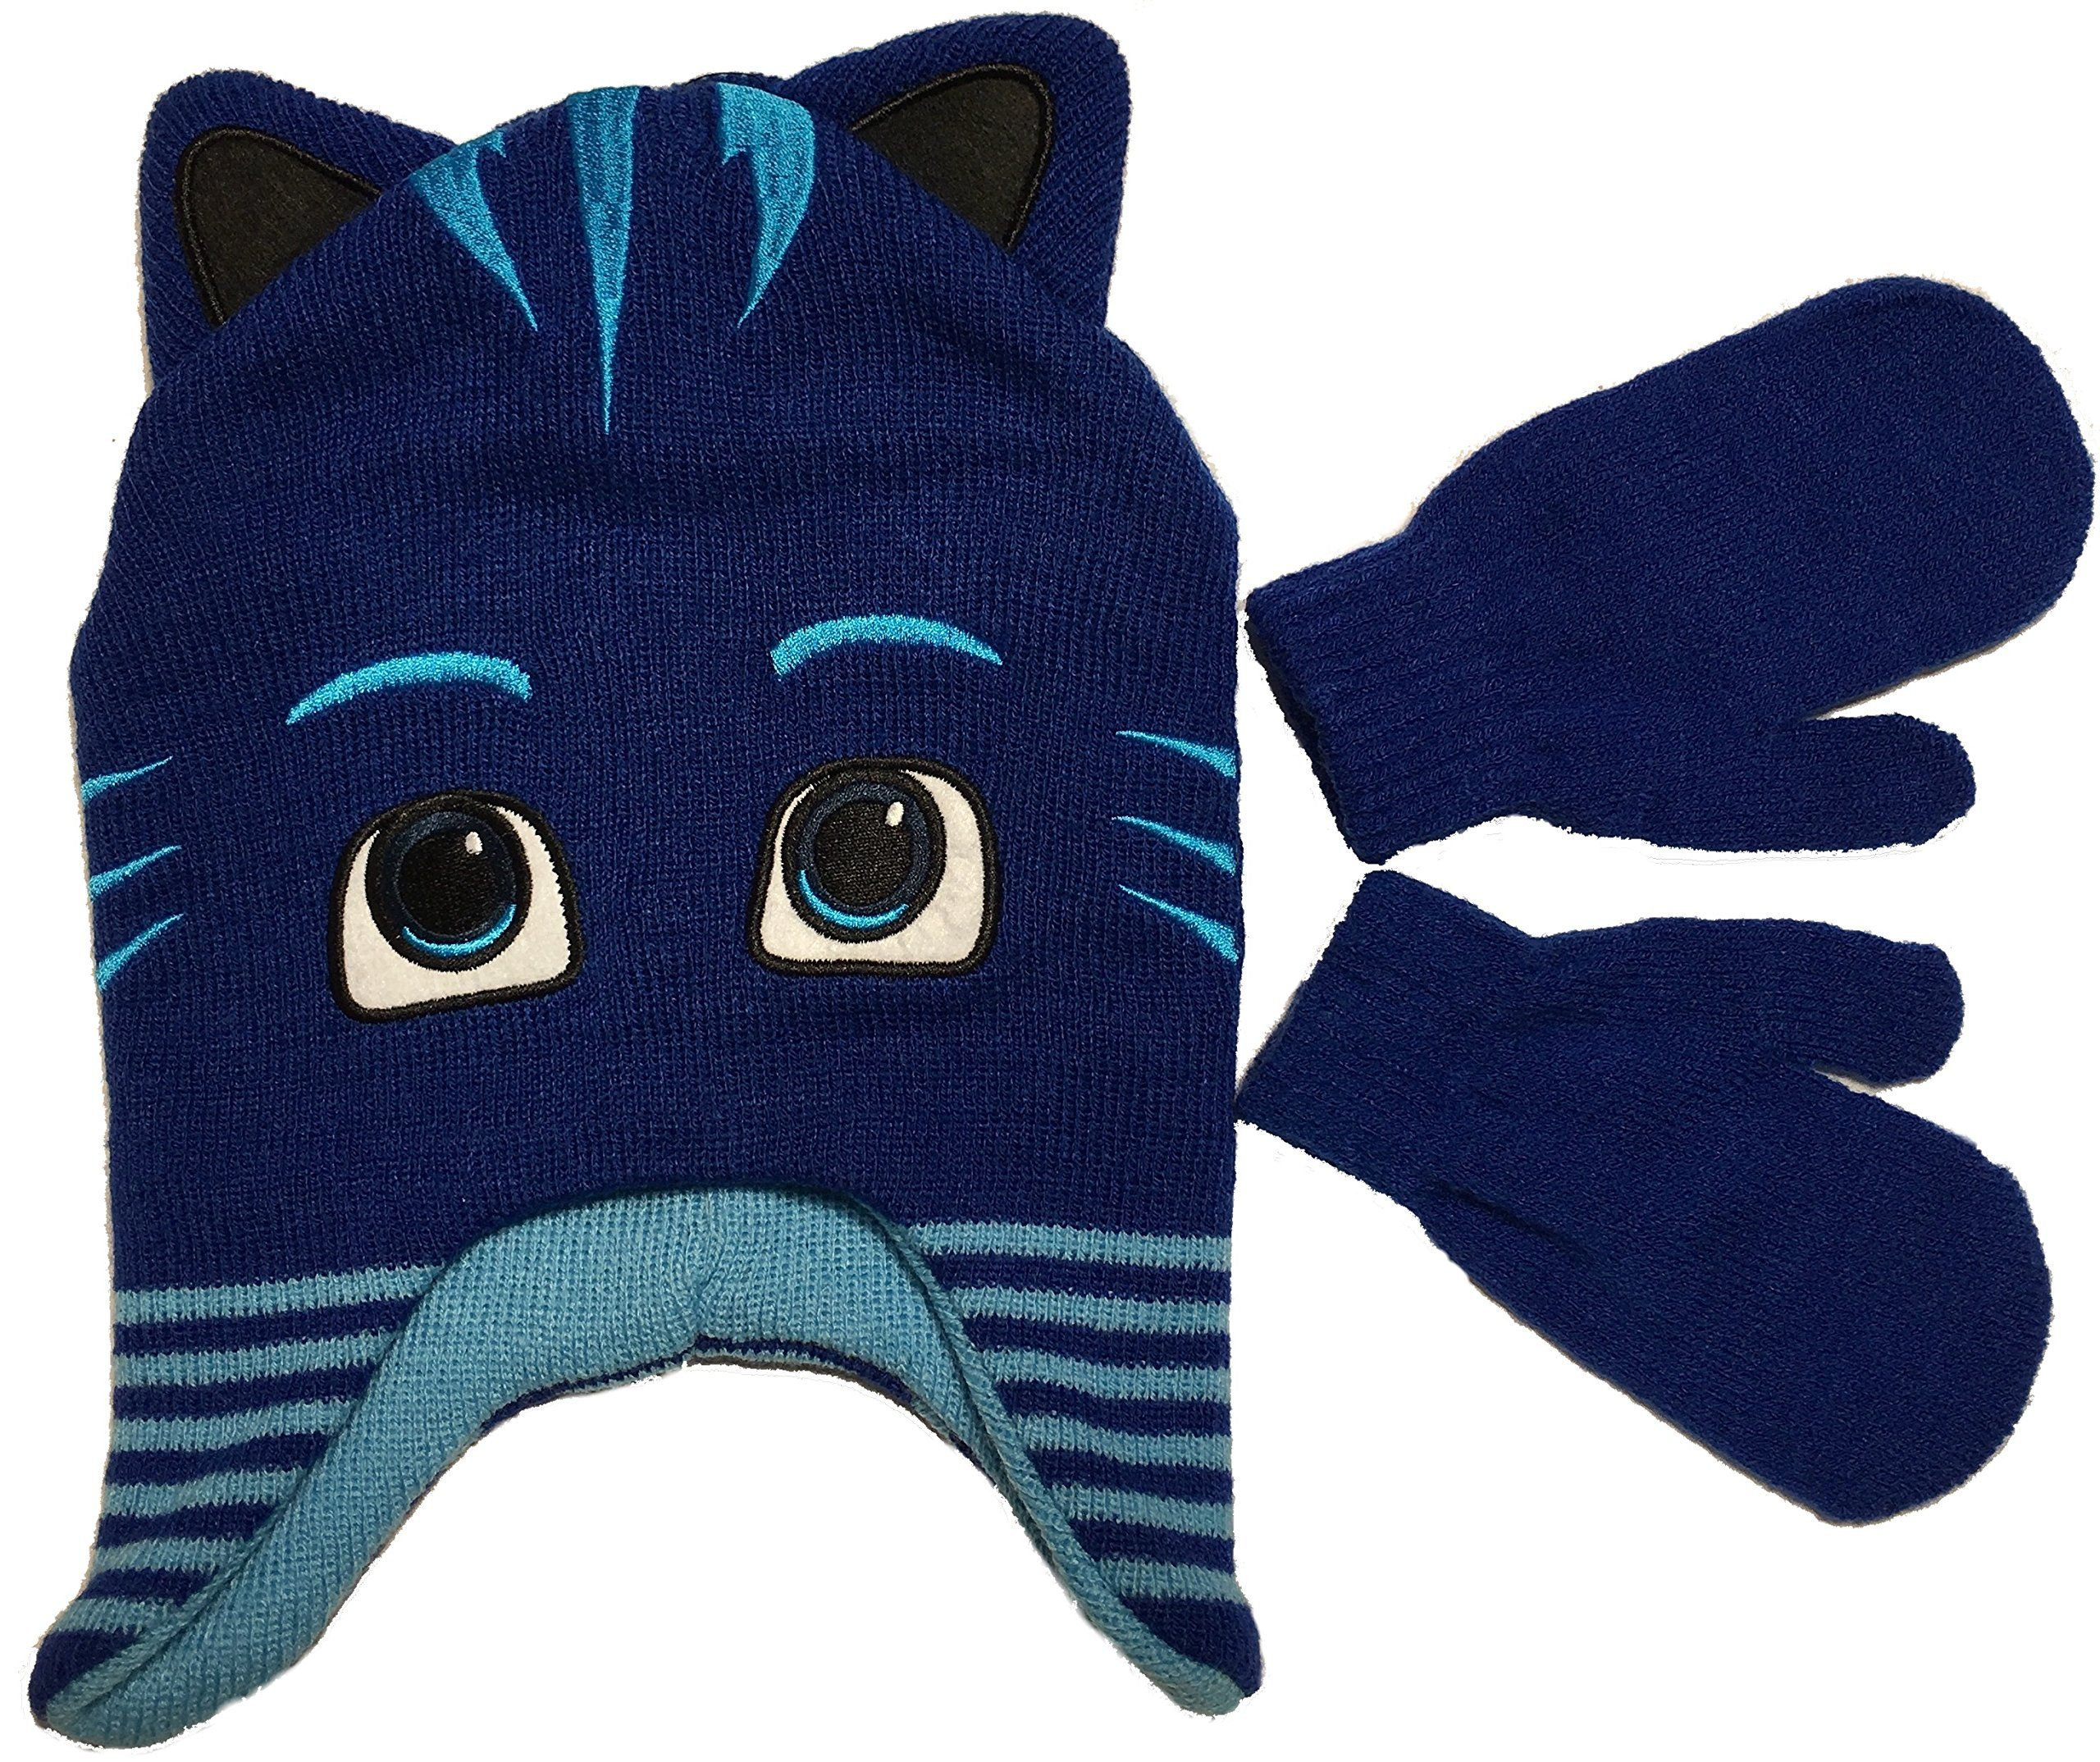 Paw Patrol Knitted Blue Navy Winter Hat /& Gloves Set Toddlers Boys One Size